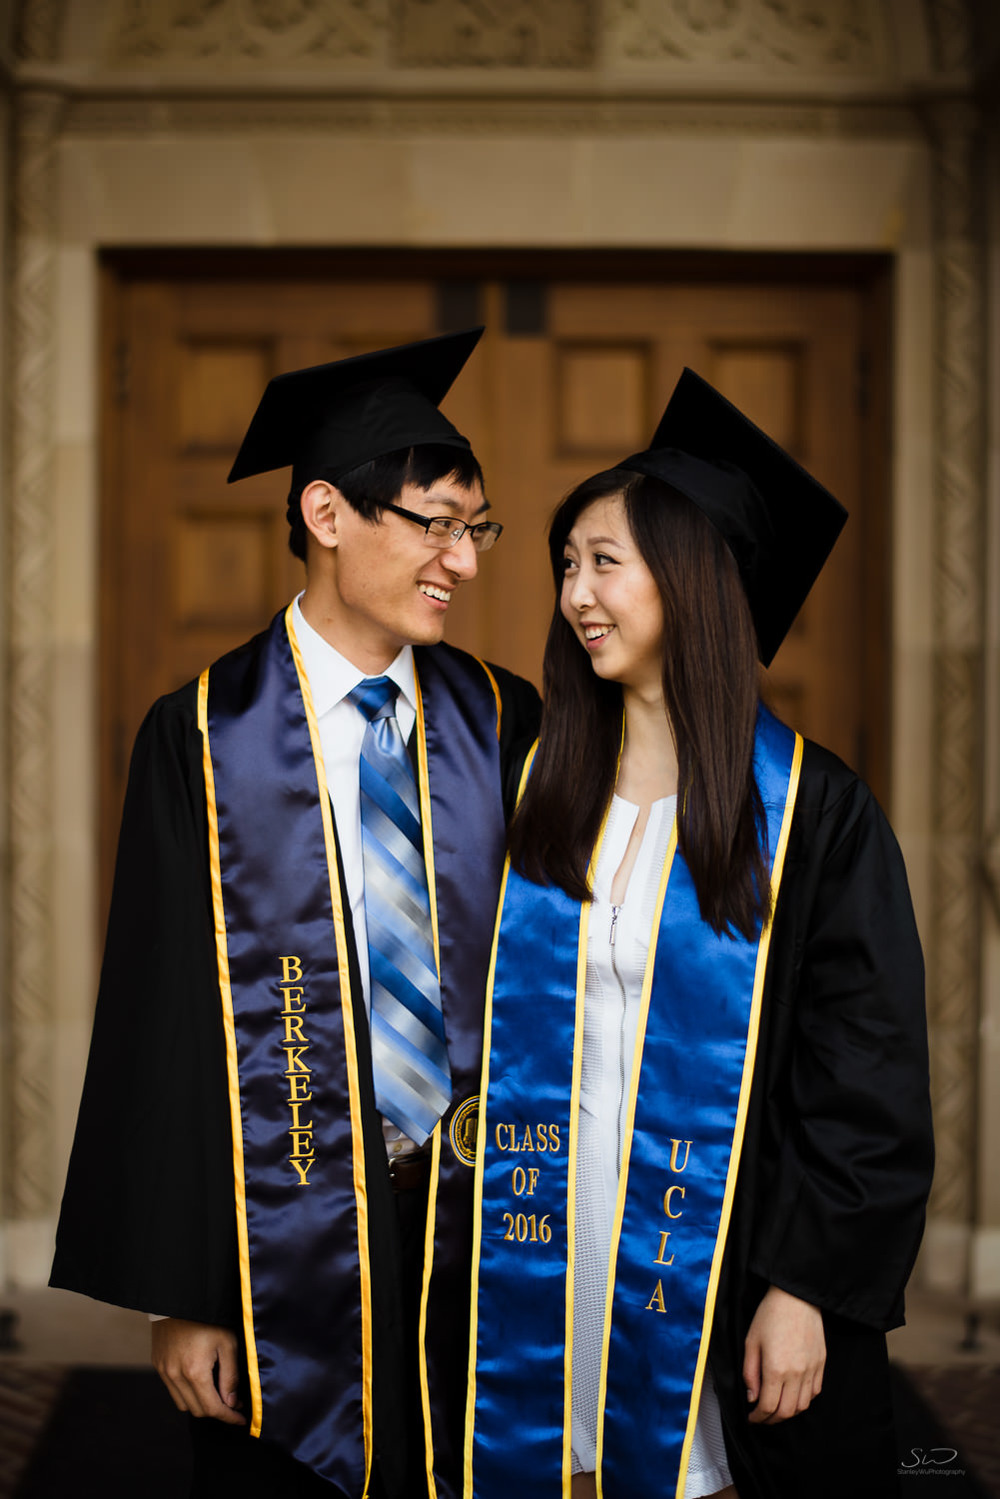 ucla-uc-berkeley-couple-grad-13.jpg